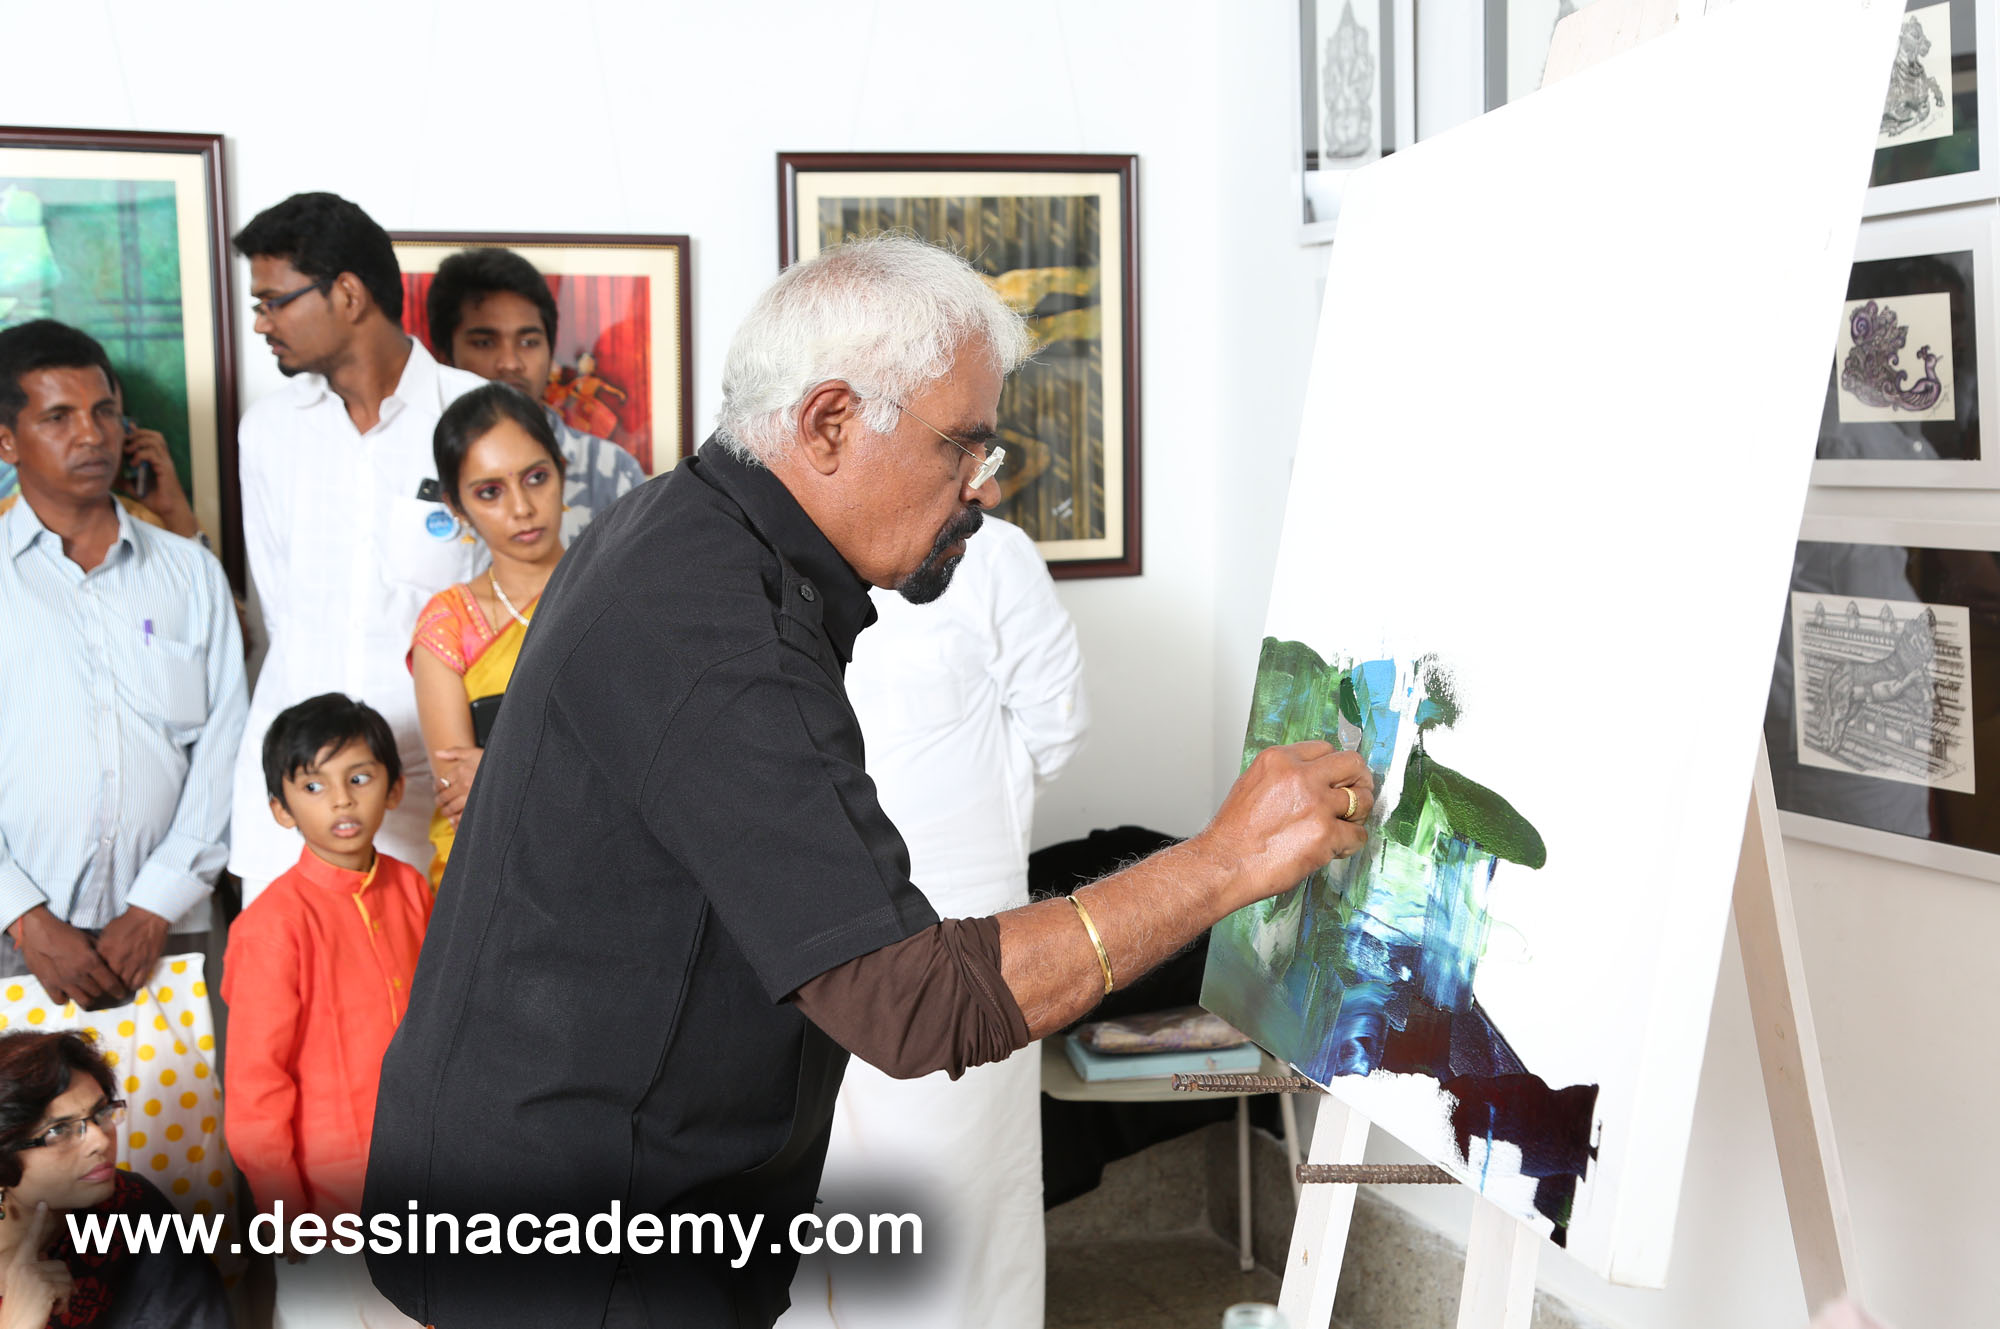 Dessin School of arts Event Gallery 2, sketching School For Kids in Anna Nagar East L BlockDessin School of Arts